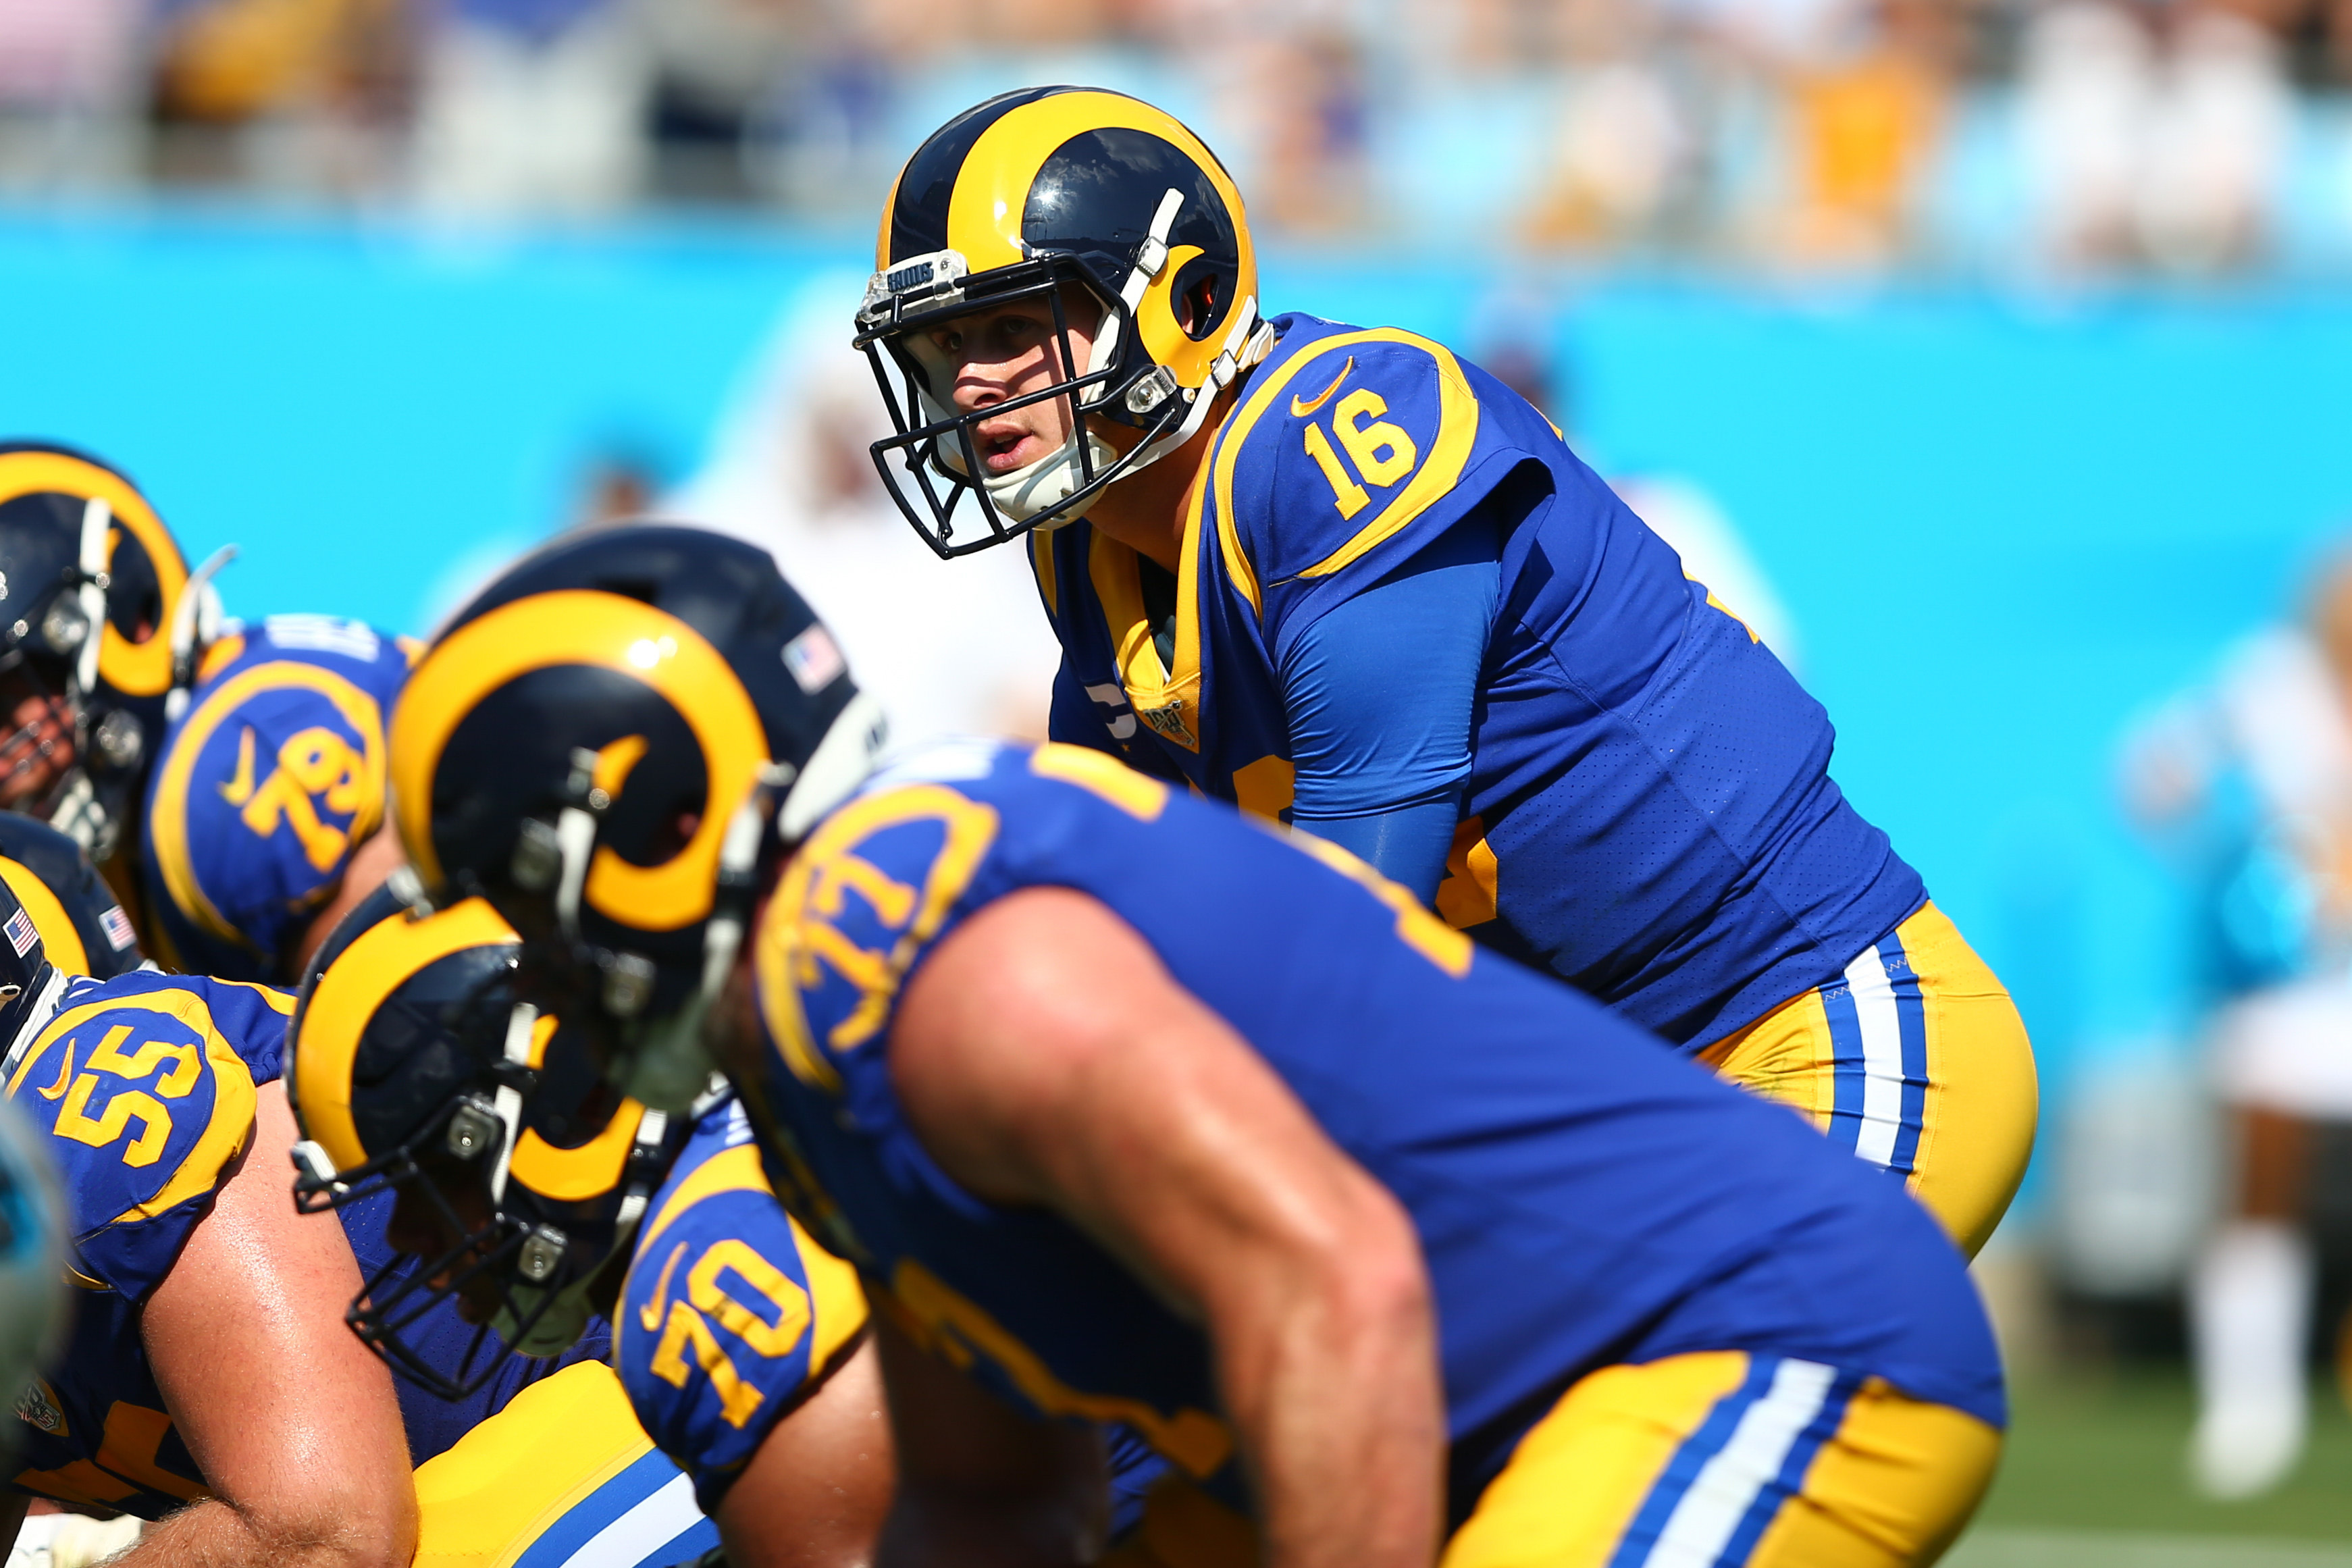 Los Angeles Rams quarterback Jared Goff stands behind center during the fourth quarter against the Carolina Panthers at Bank of America Stadium.